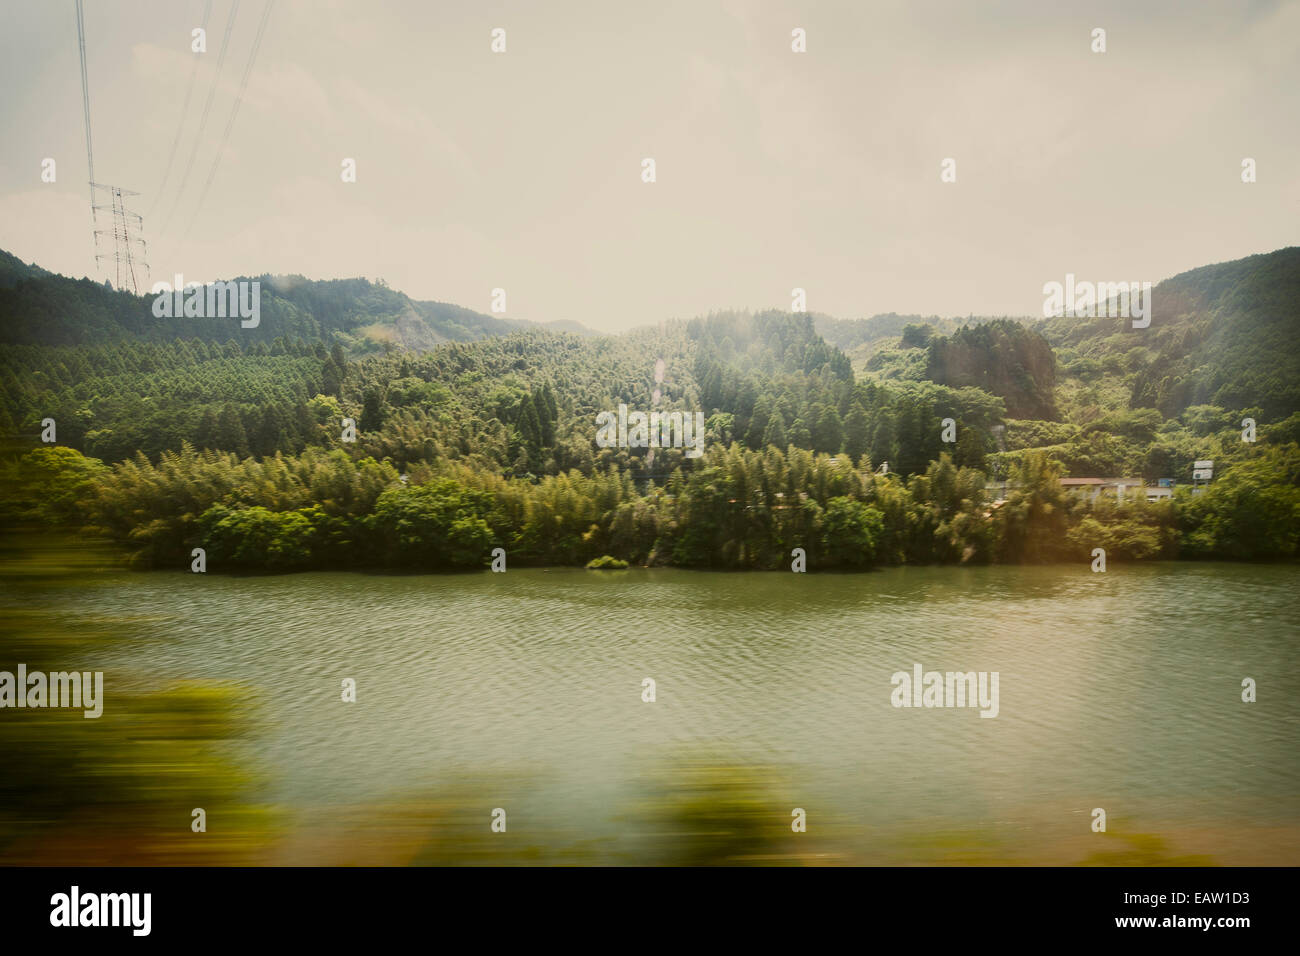 Blurry view of trees on the foreground a placid lake and lush green hilly view of urban Japan from bullet train. - Stock Image